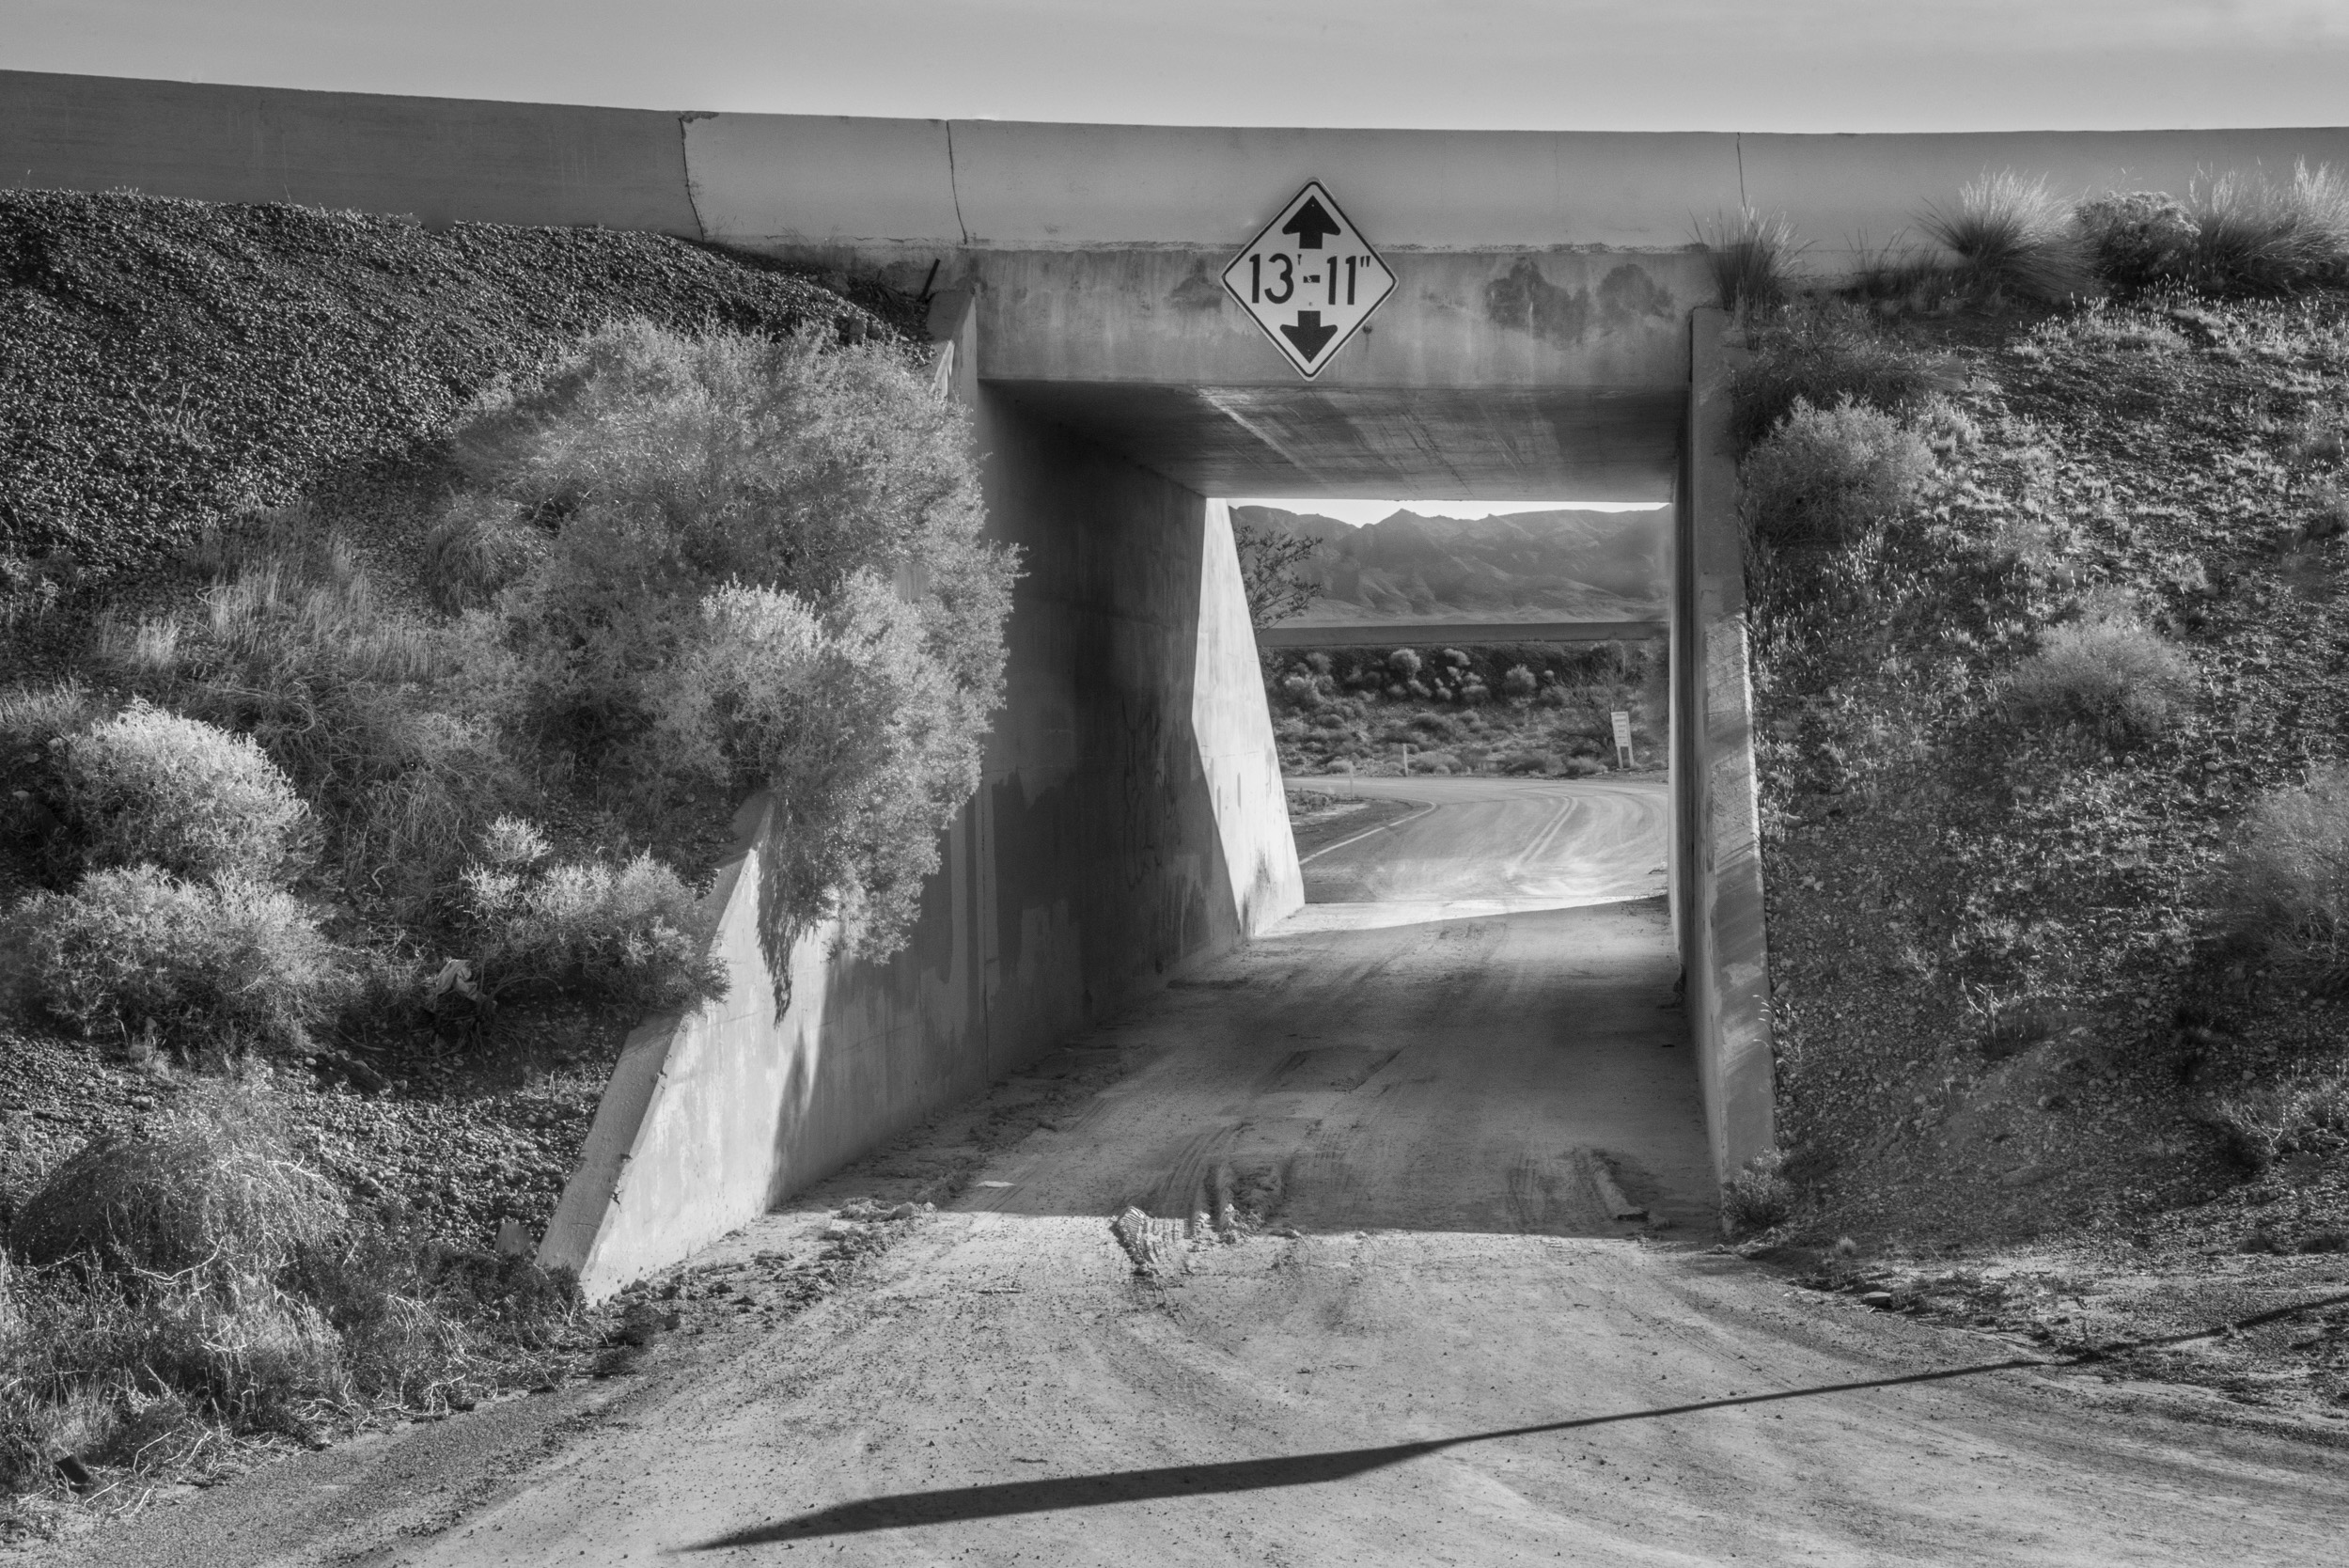 Underpass, 15 Freeway, California © Robert Welkie 2017